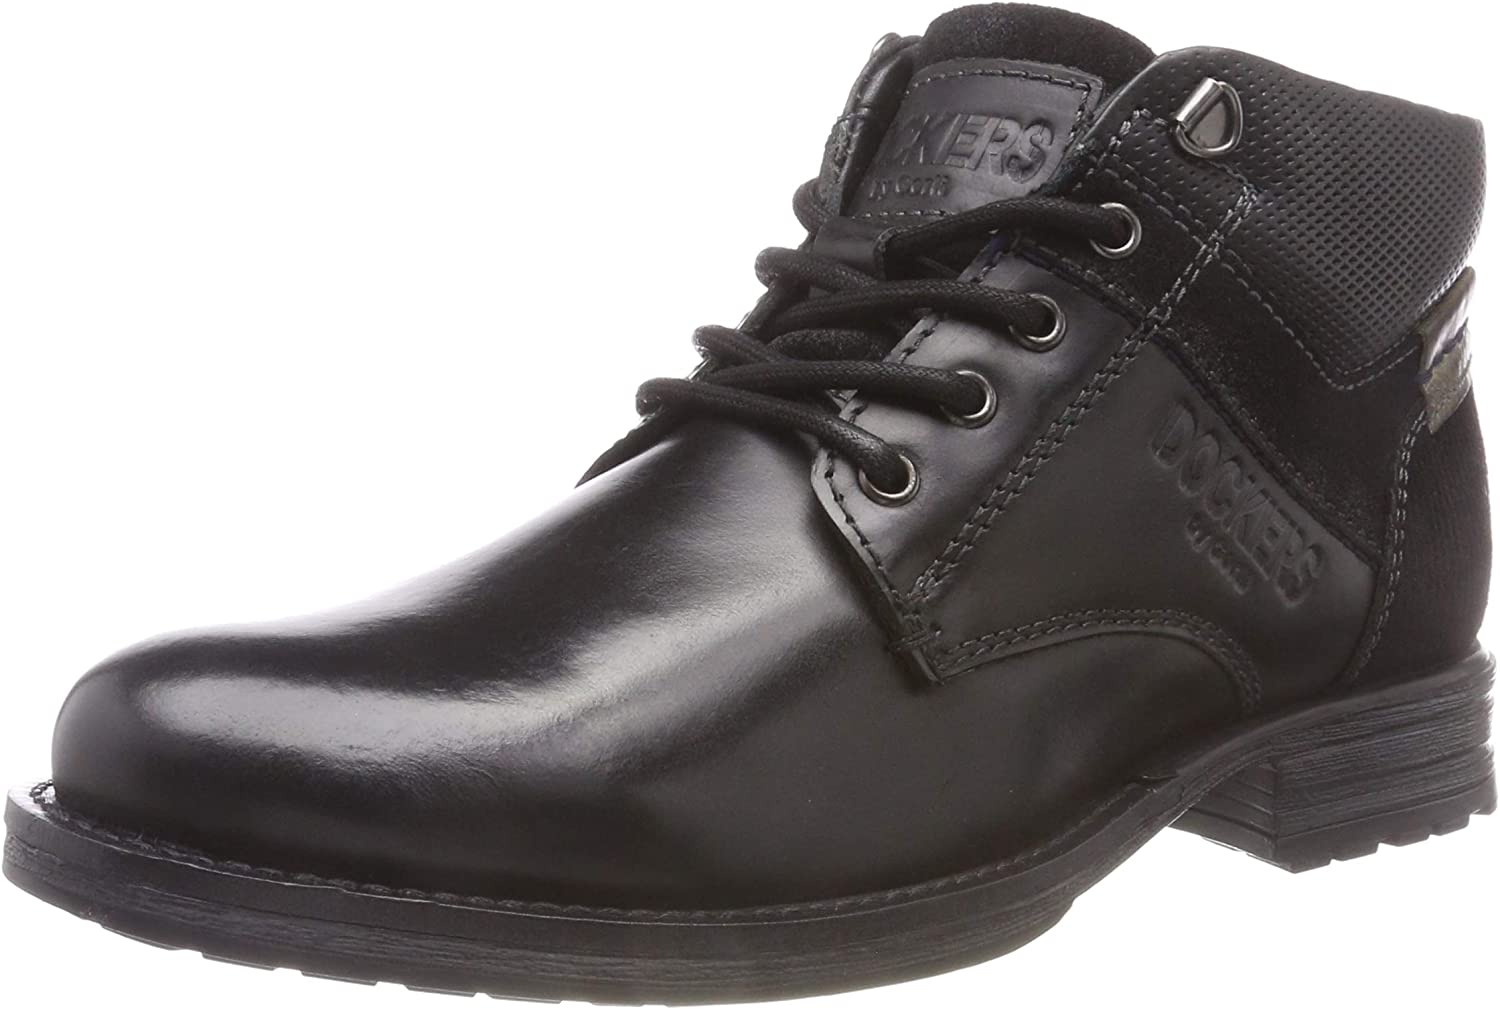 Dockers by Gerli Men's 43dy002 Classic Boots